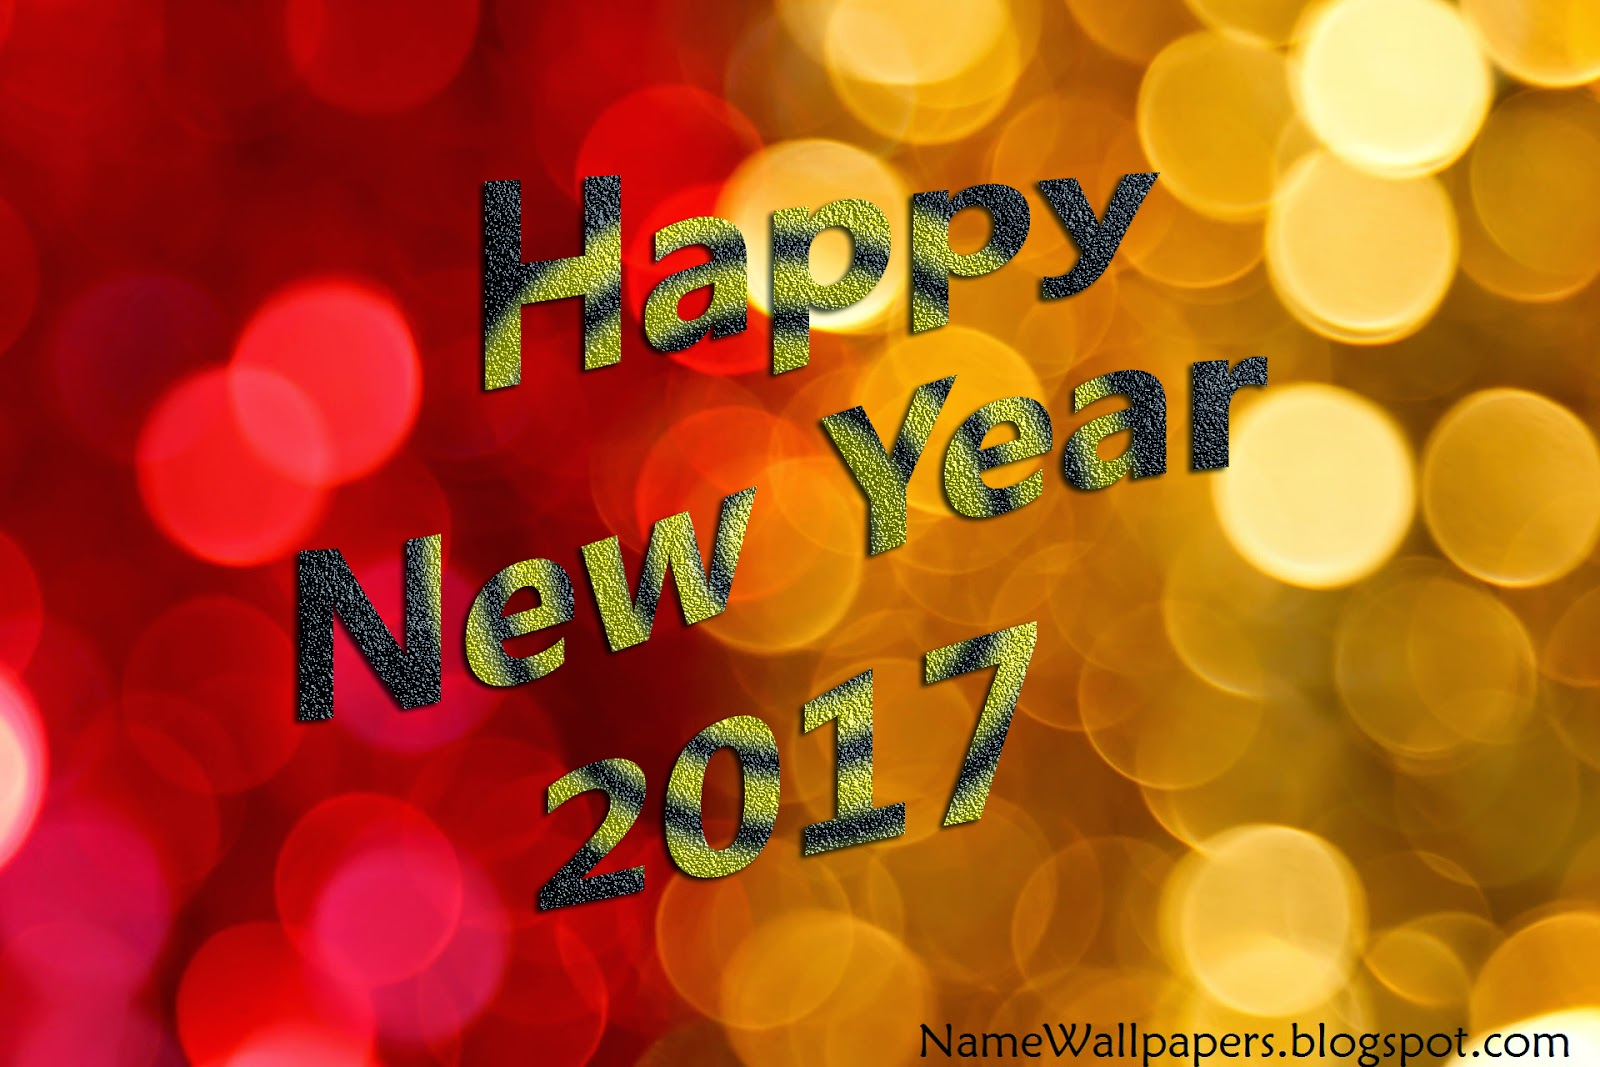 Wallpaper download new year - Happy New Year 2017 Wallpapers Hd Images Pictures 2017 Download Free